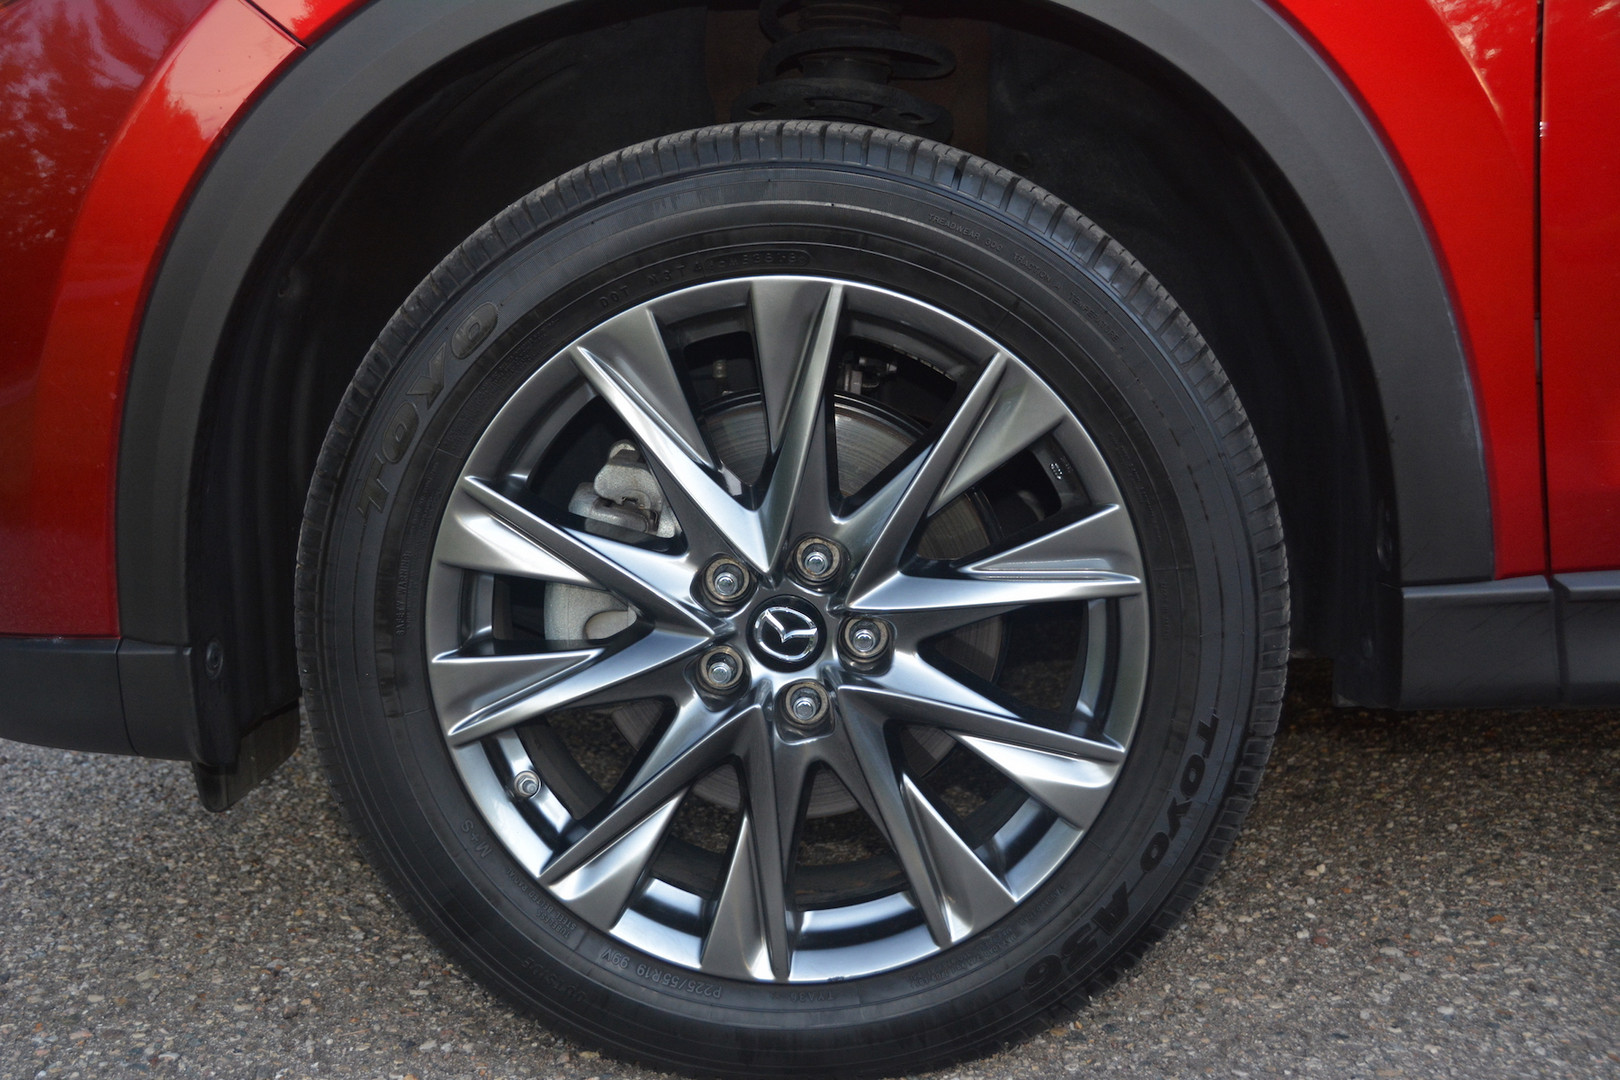 2019 Mazda CX5 Wheels